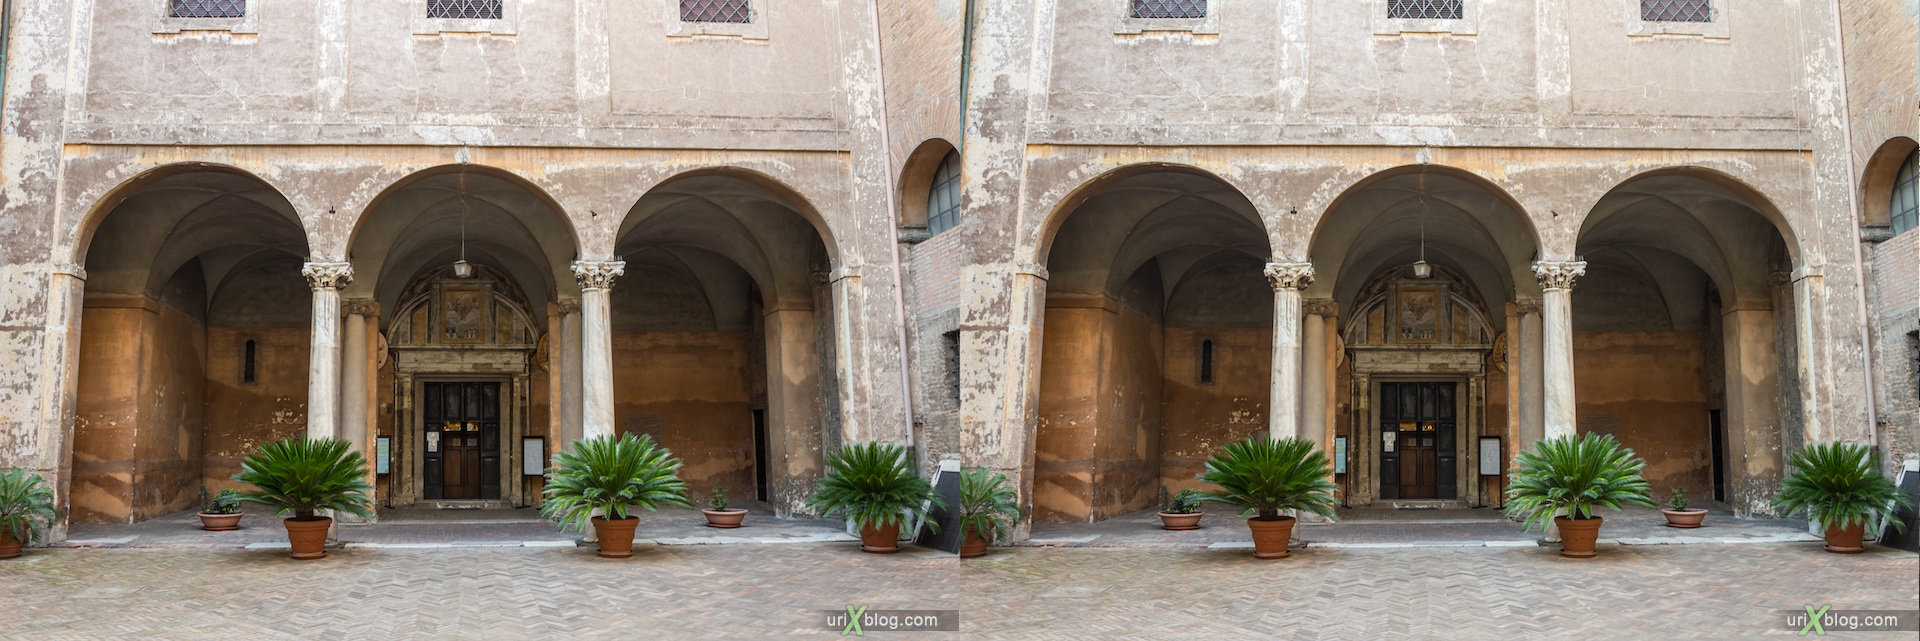 2012, Santi Quattro Coronati Church, Rome, Italy, cathedral, monastery, Christianity, Catholicism, 3D, stereo pair, cross-eyed, crossview, cross view stereo pair